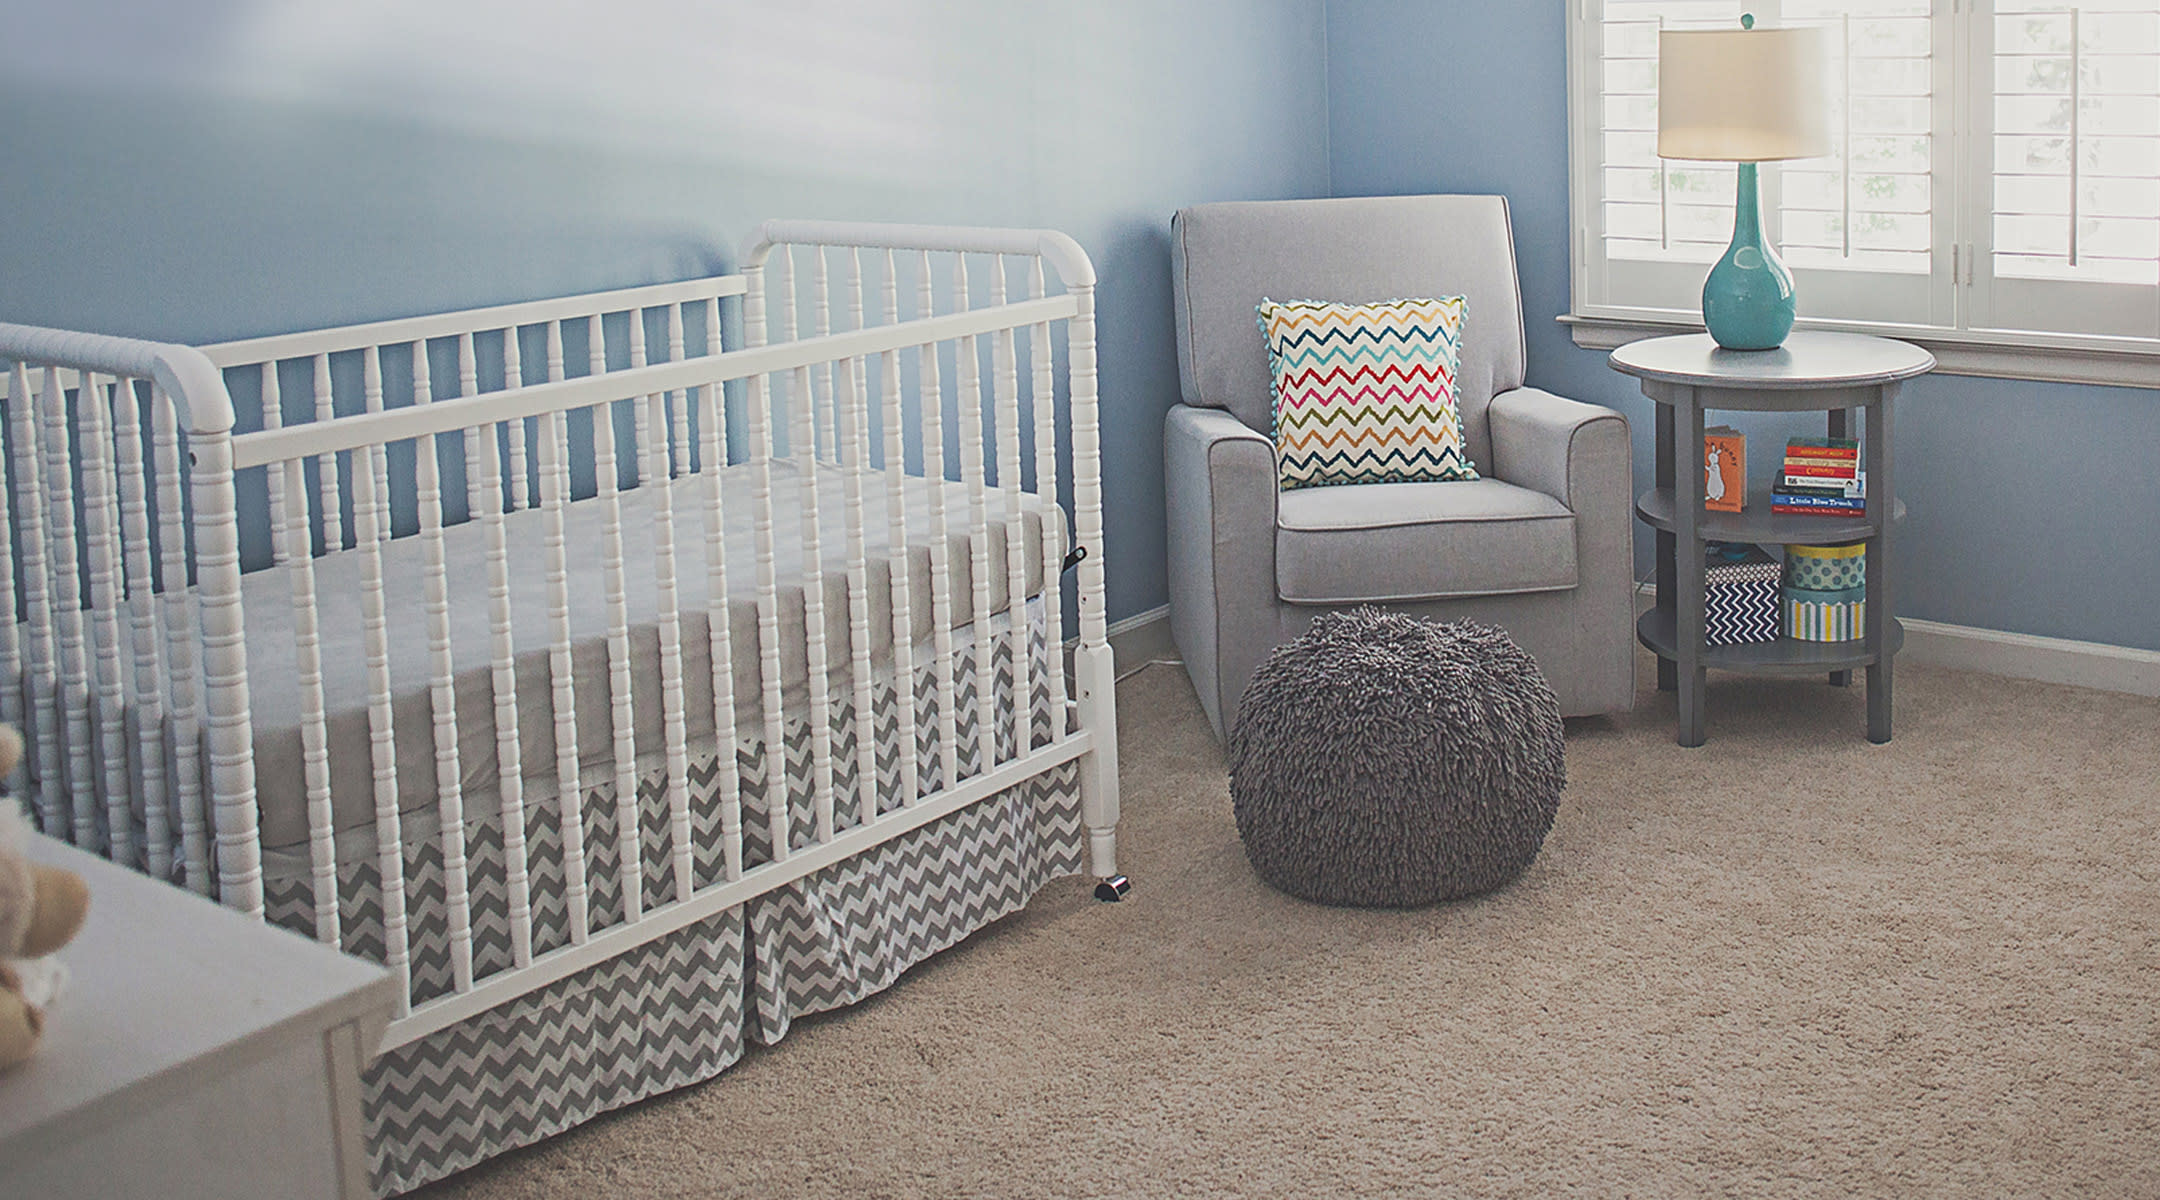 Baby nursery with blue walls.